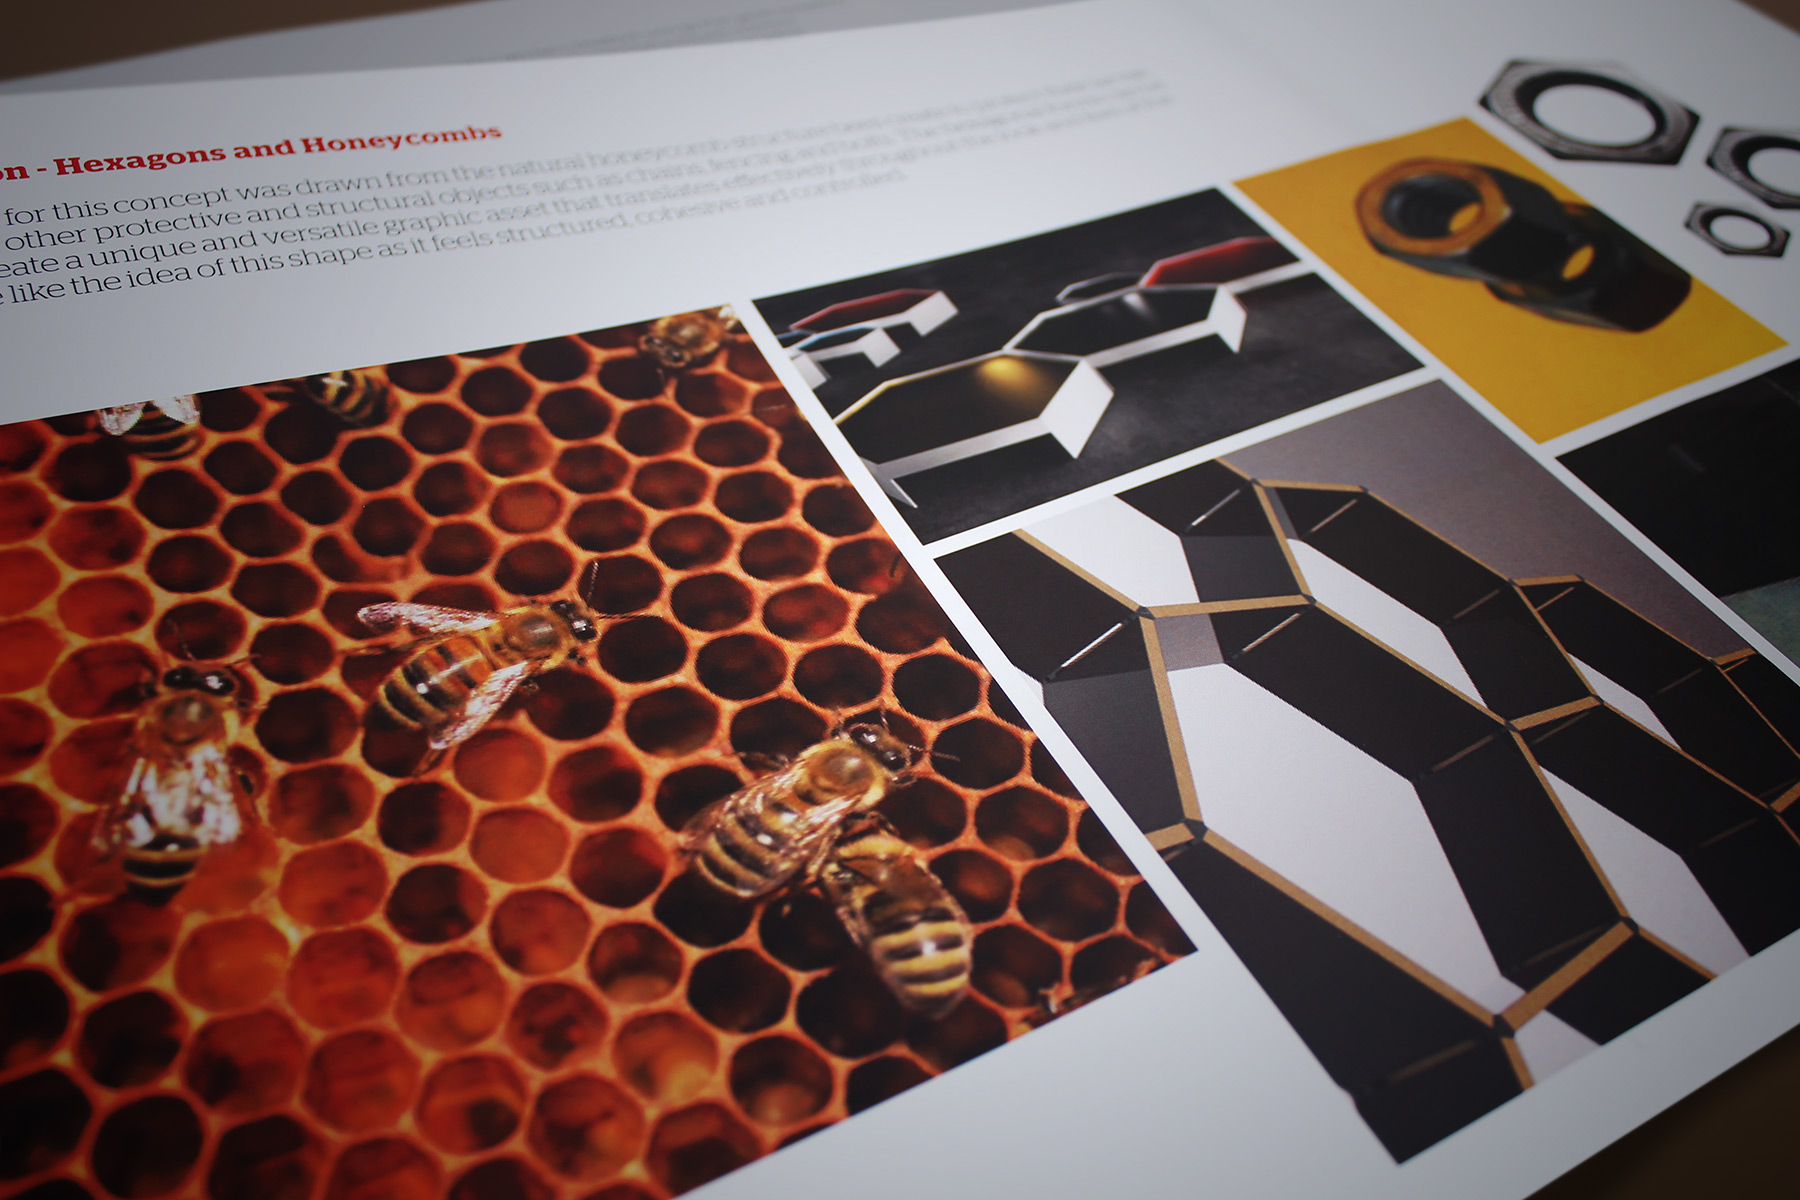 Our inspiration was drawn from the natural honeycomb structure bees create to protect their larvae.